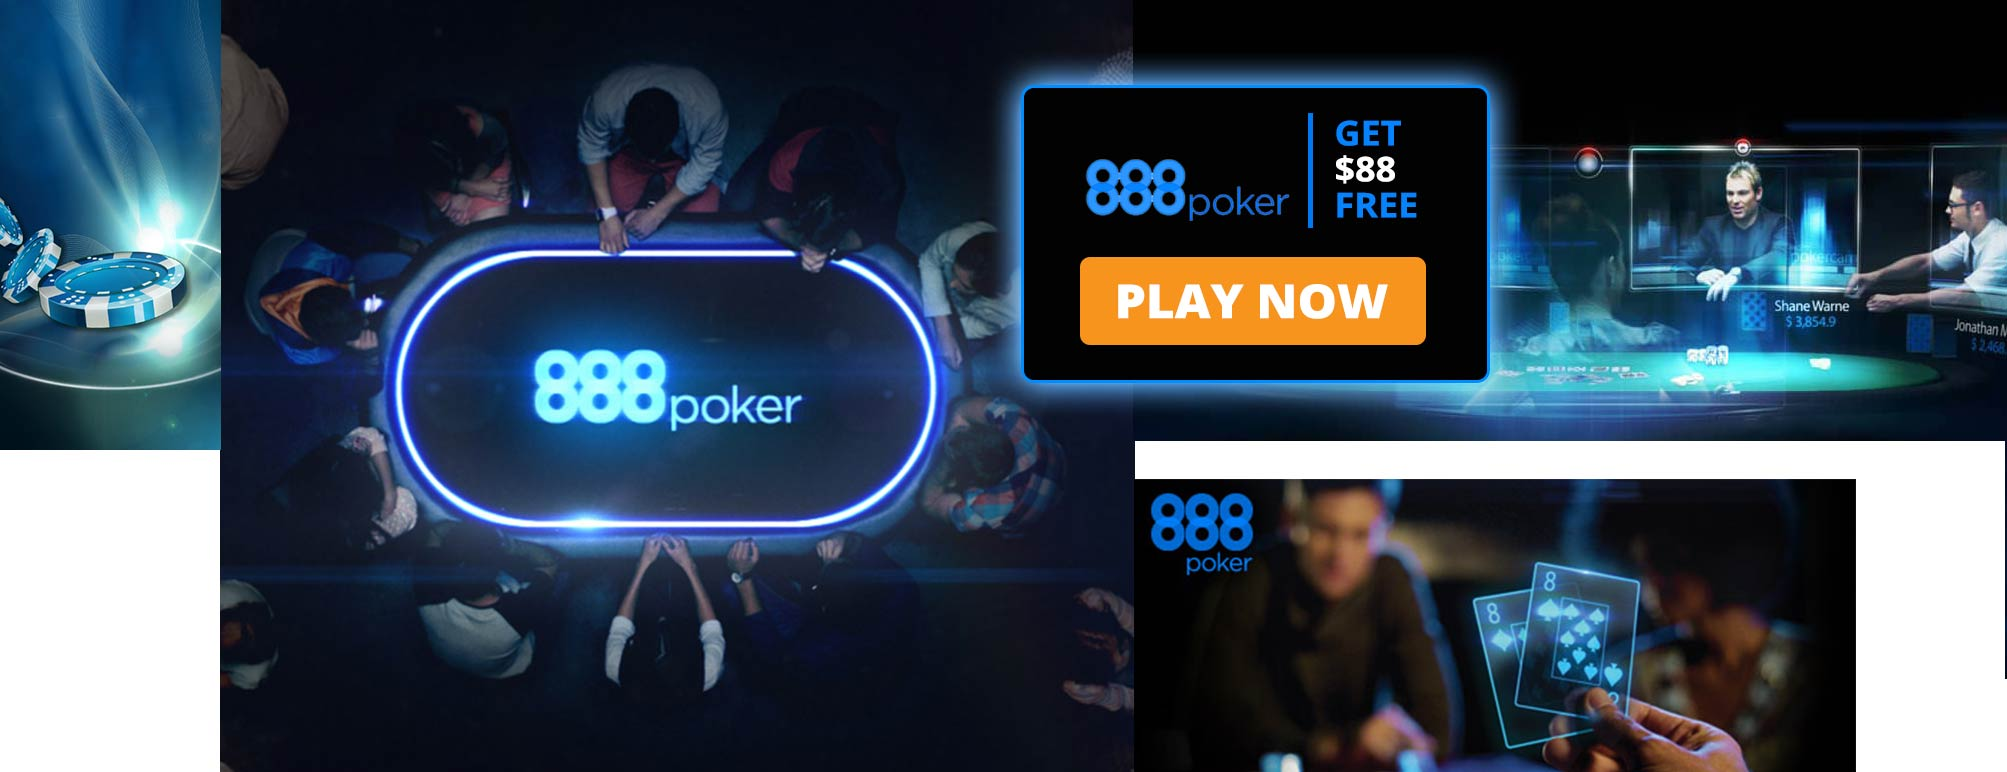 888 Poker Toll Free Number